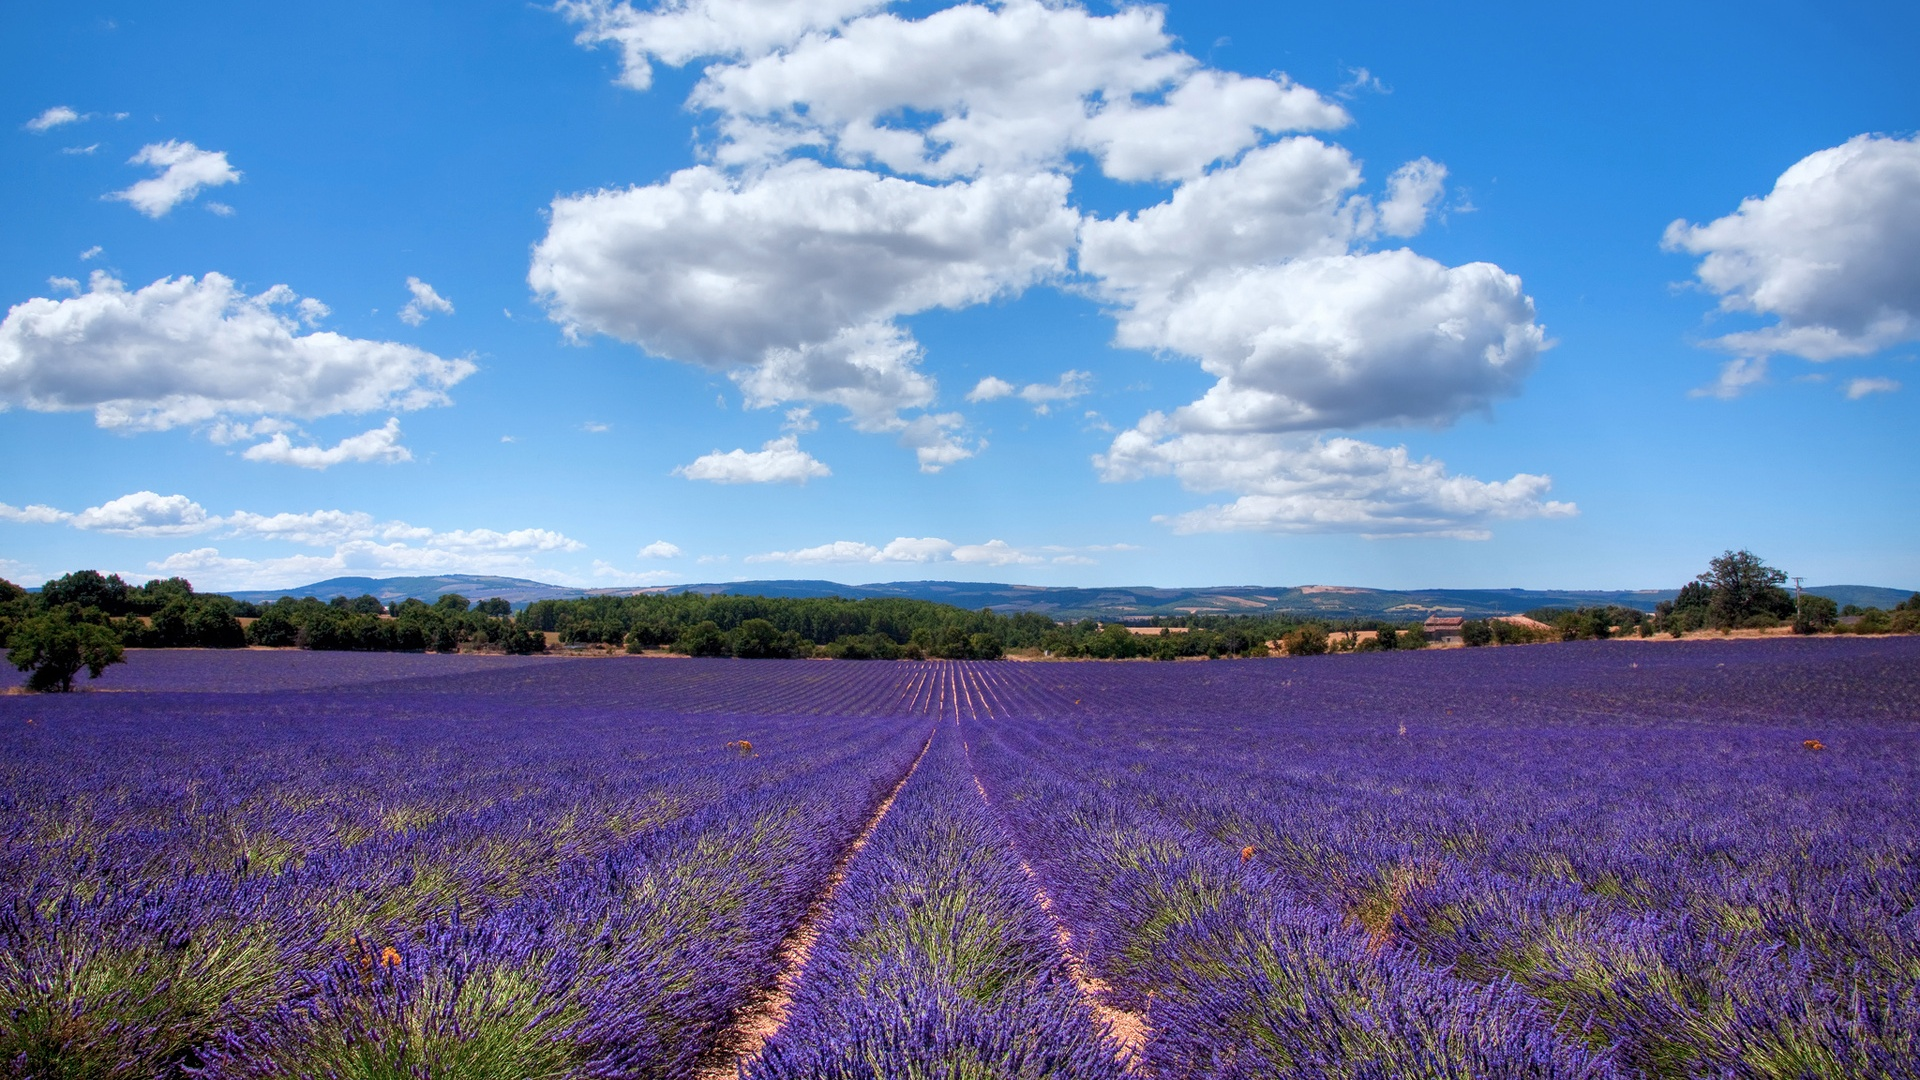 download hintergrundbilder 1920x1080 full hd lavendel in der provence frankreich hd hintergrund. Black Bedroom Furniture Sets. Home Design Ideas